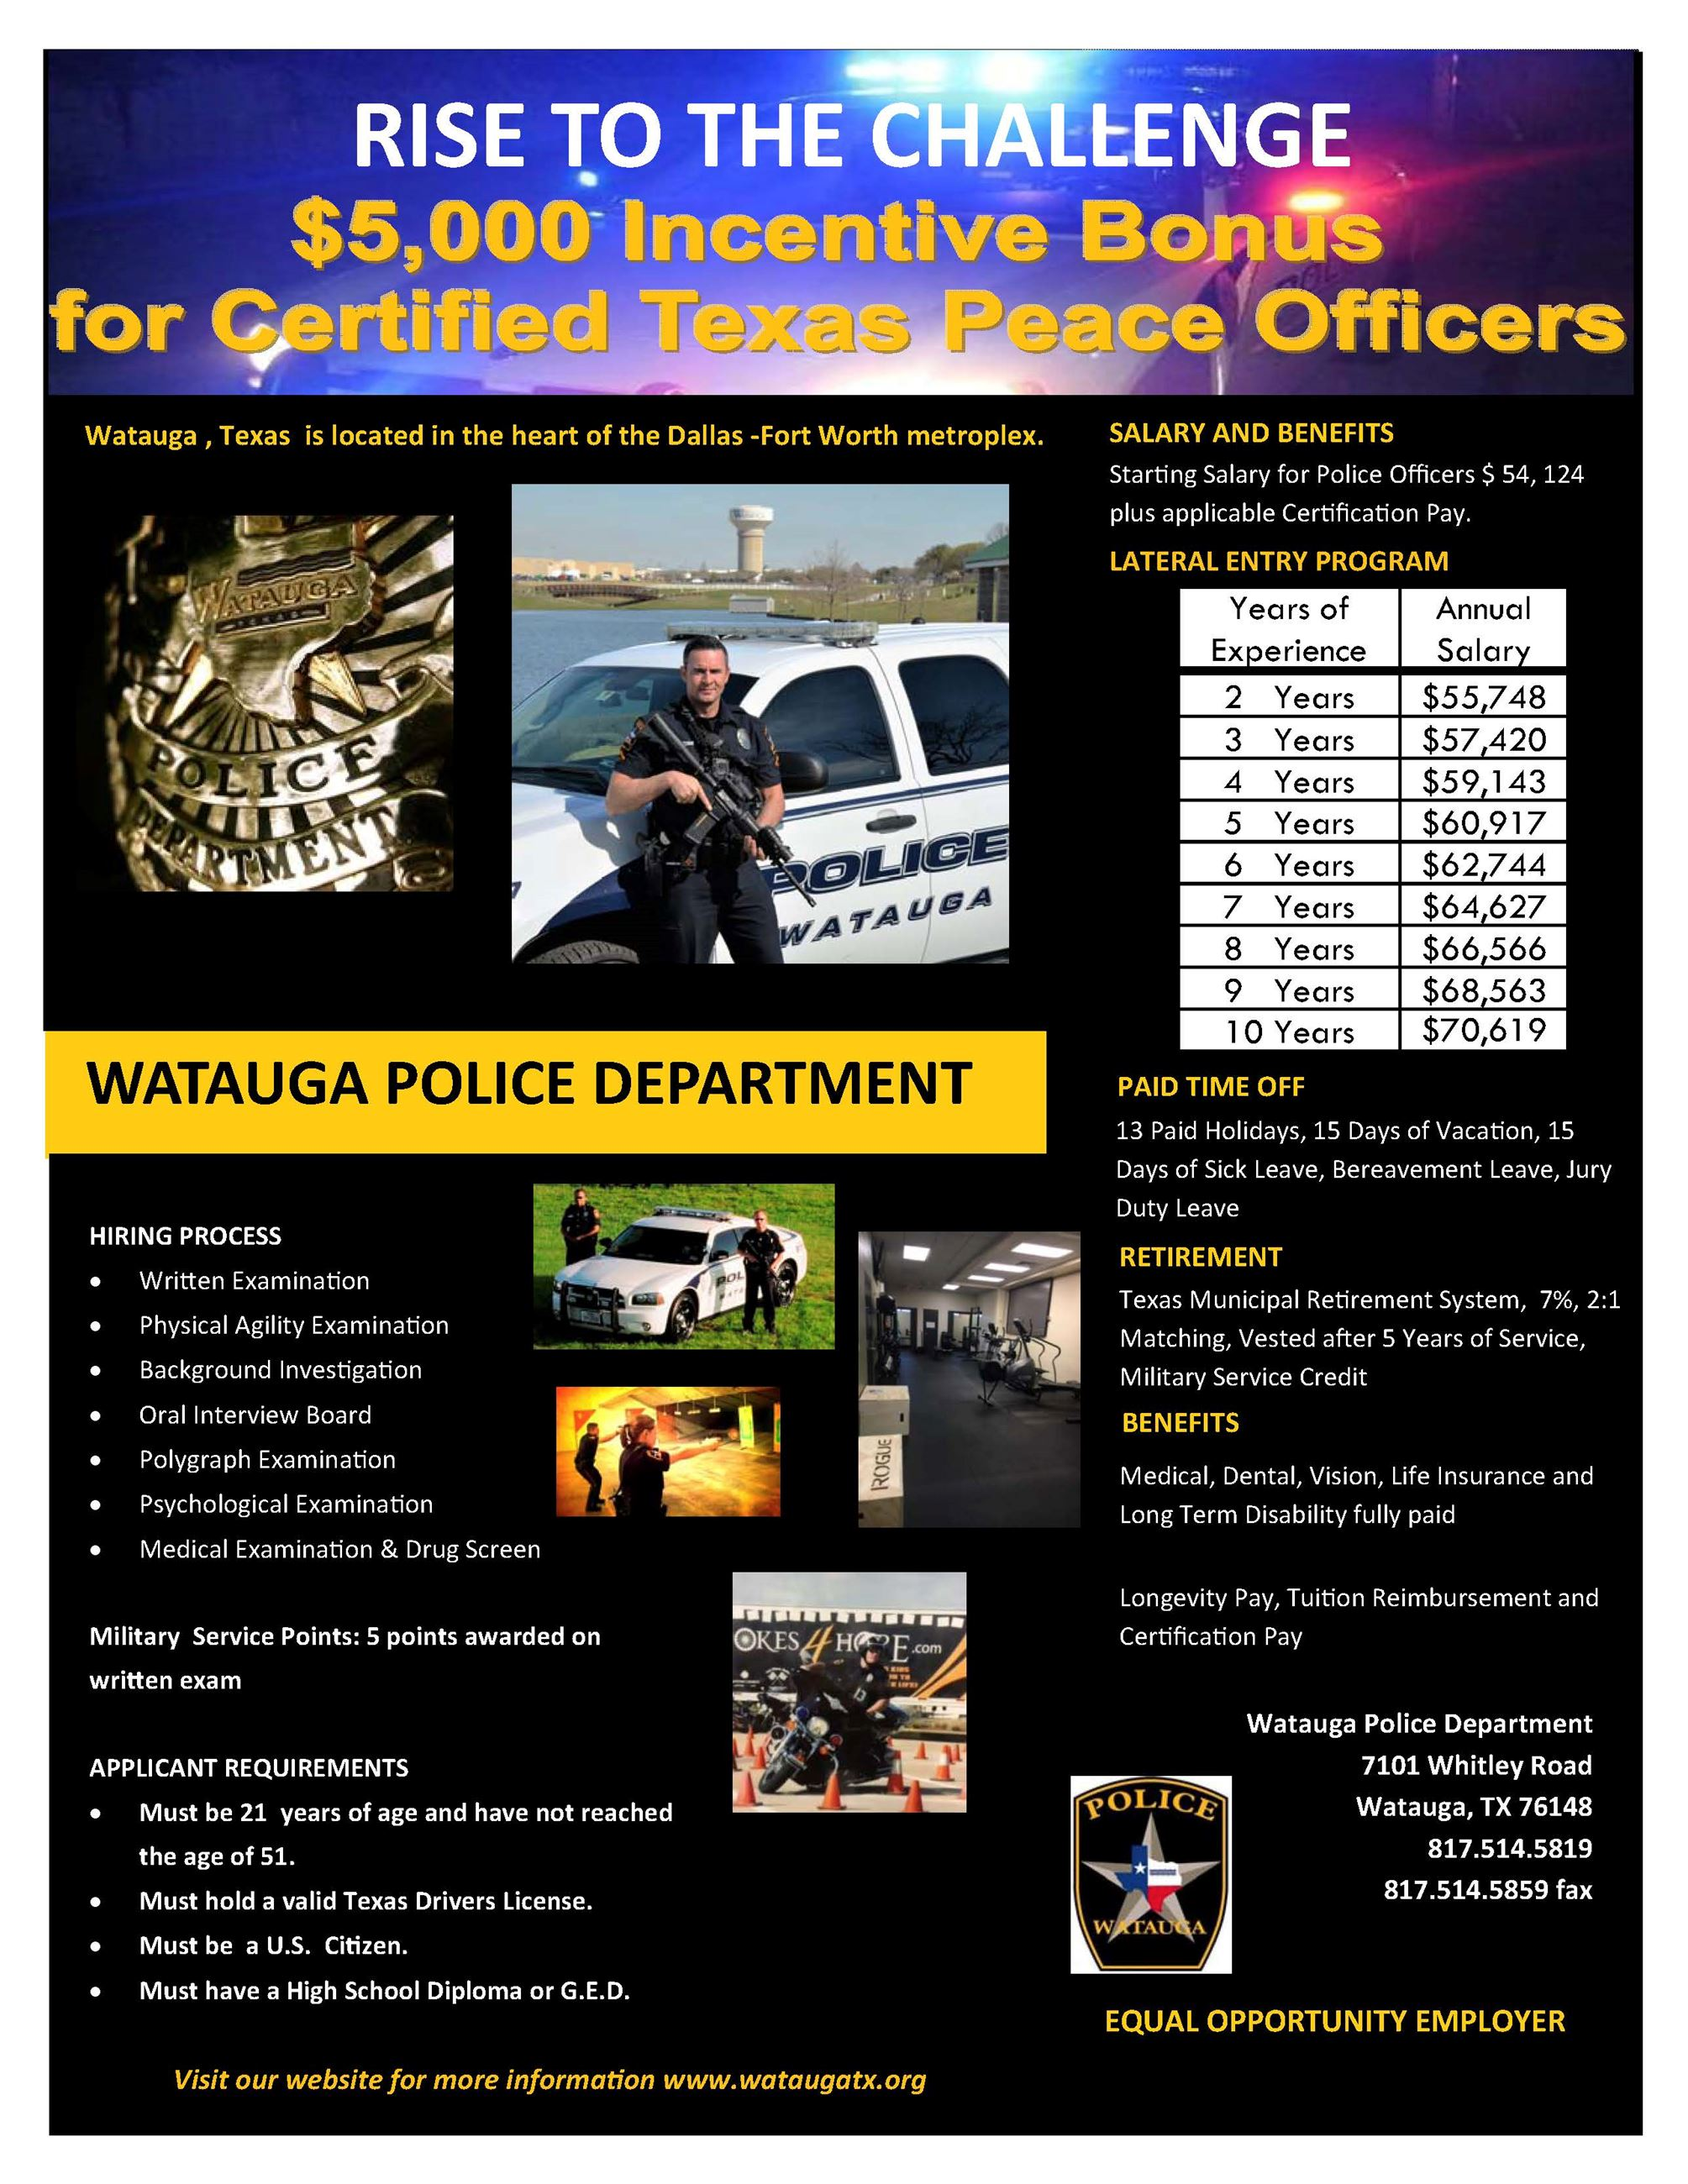 Police officer applicants watauga tx official website hiring process xflitez Choice Image